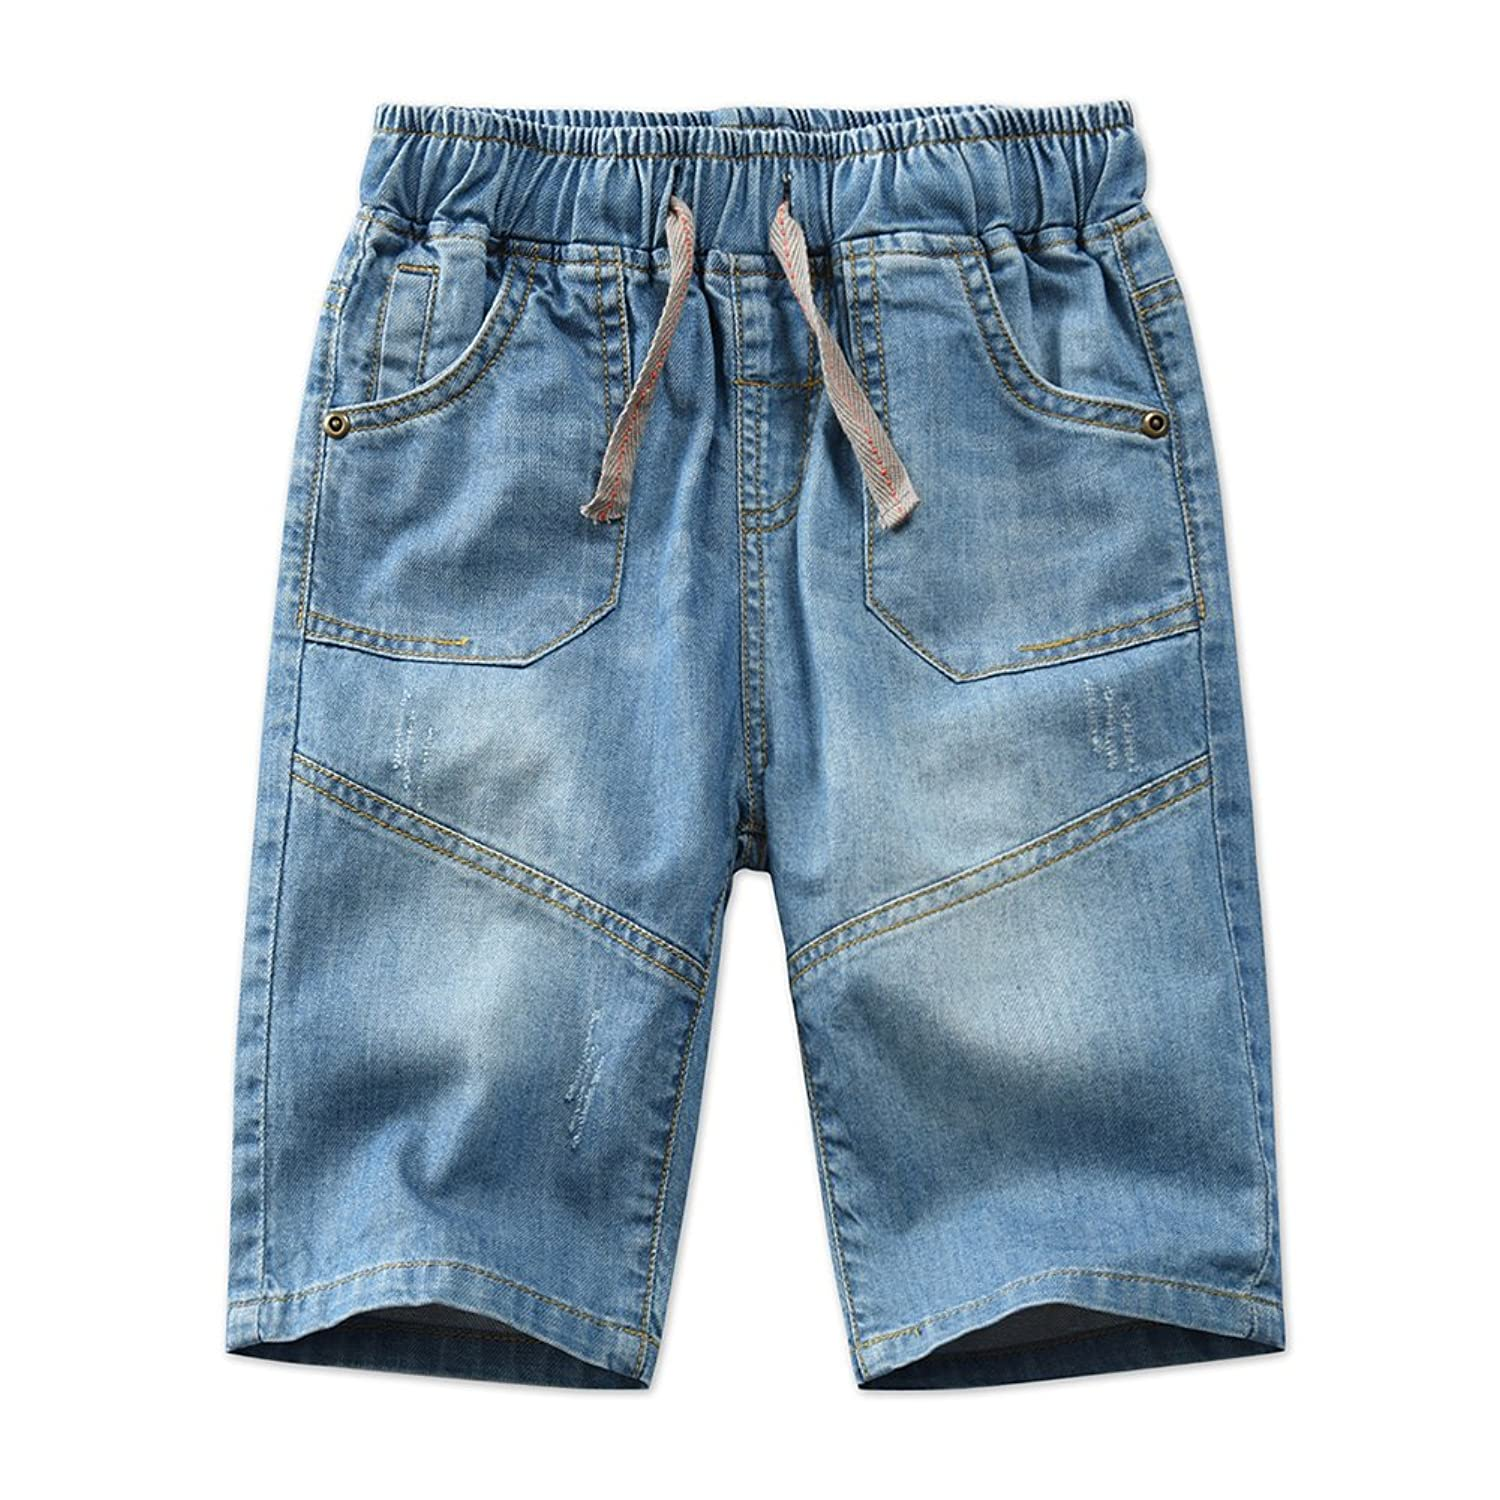 SITENG SHORTS ボーイズ